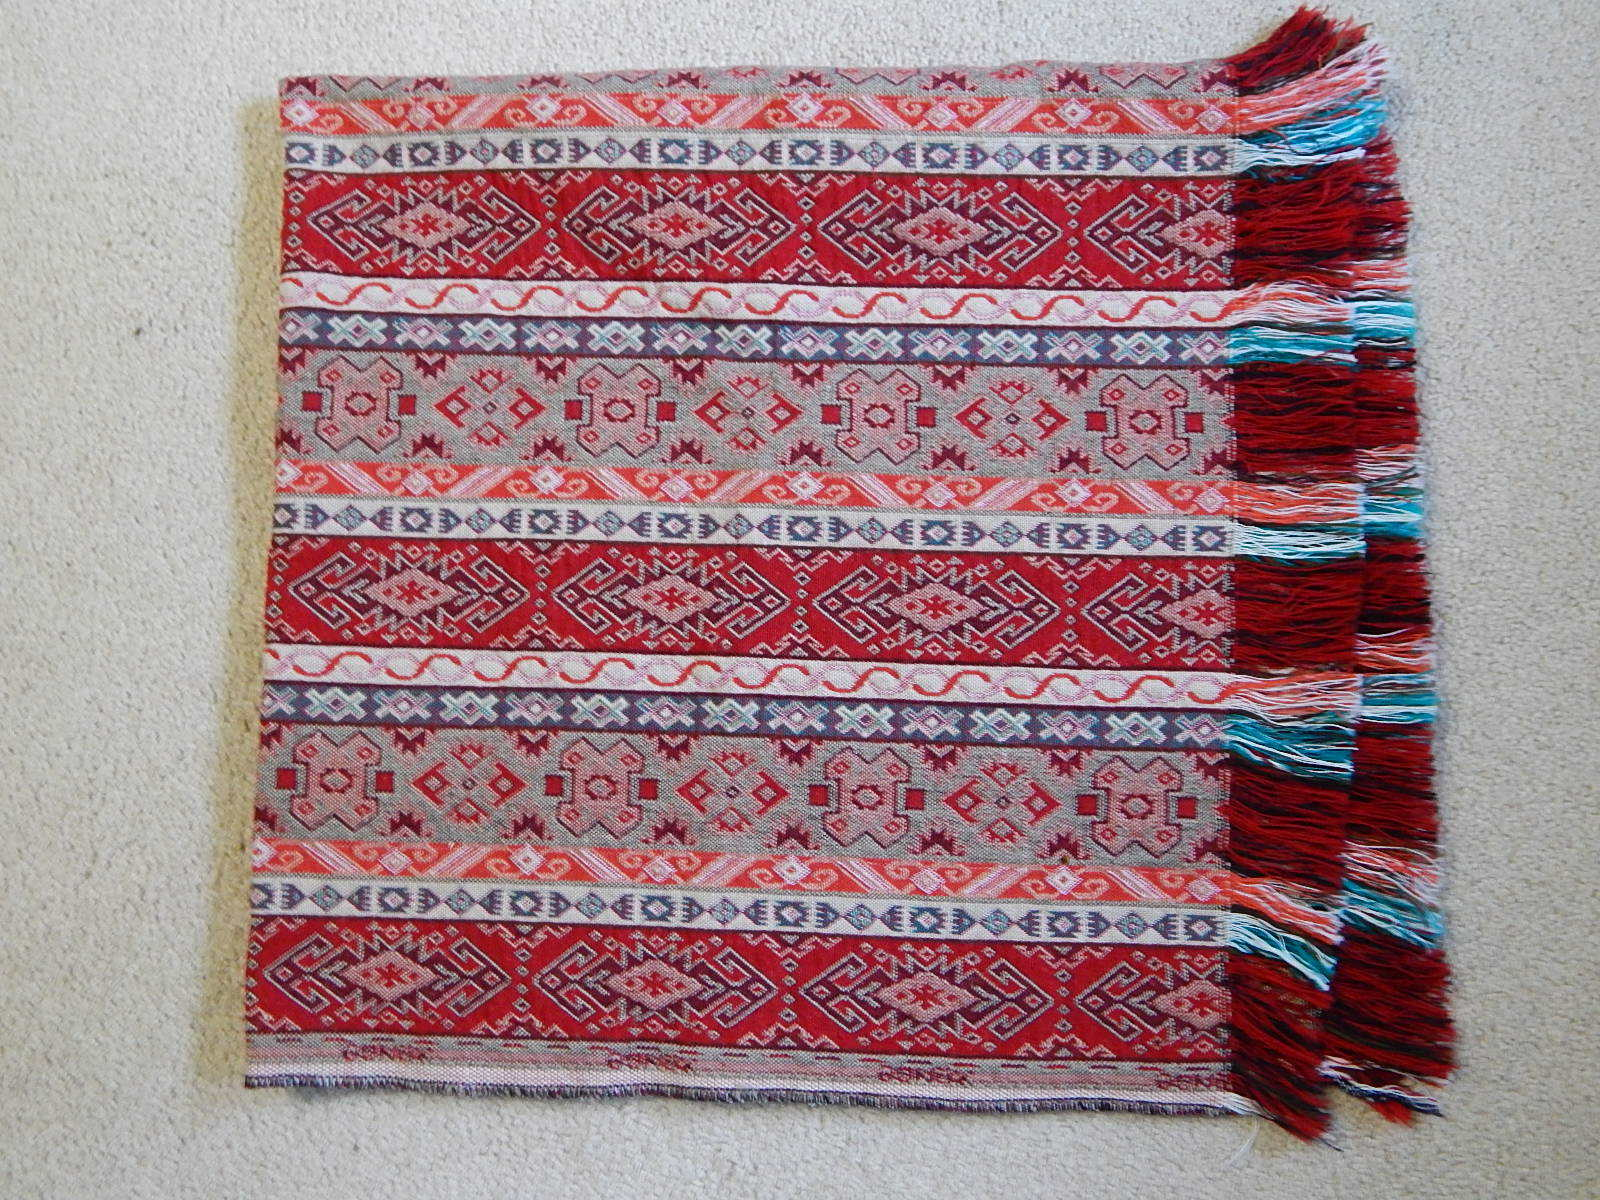 44  x 44  Middle Eastern Woven Textile Blanket Rug Wall Art